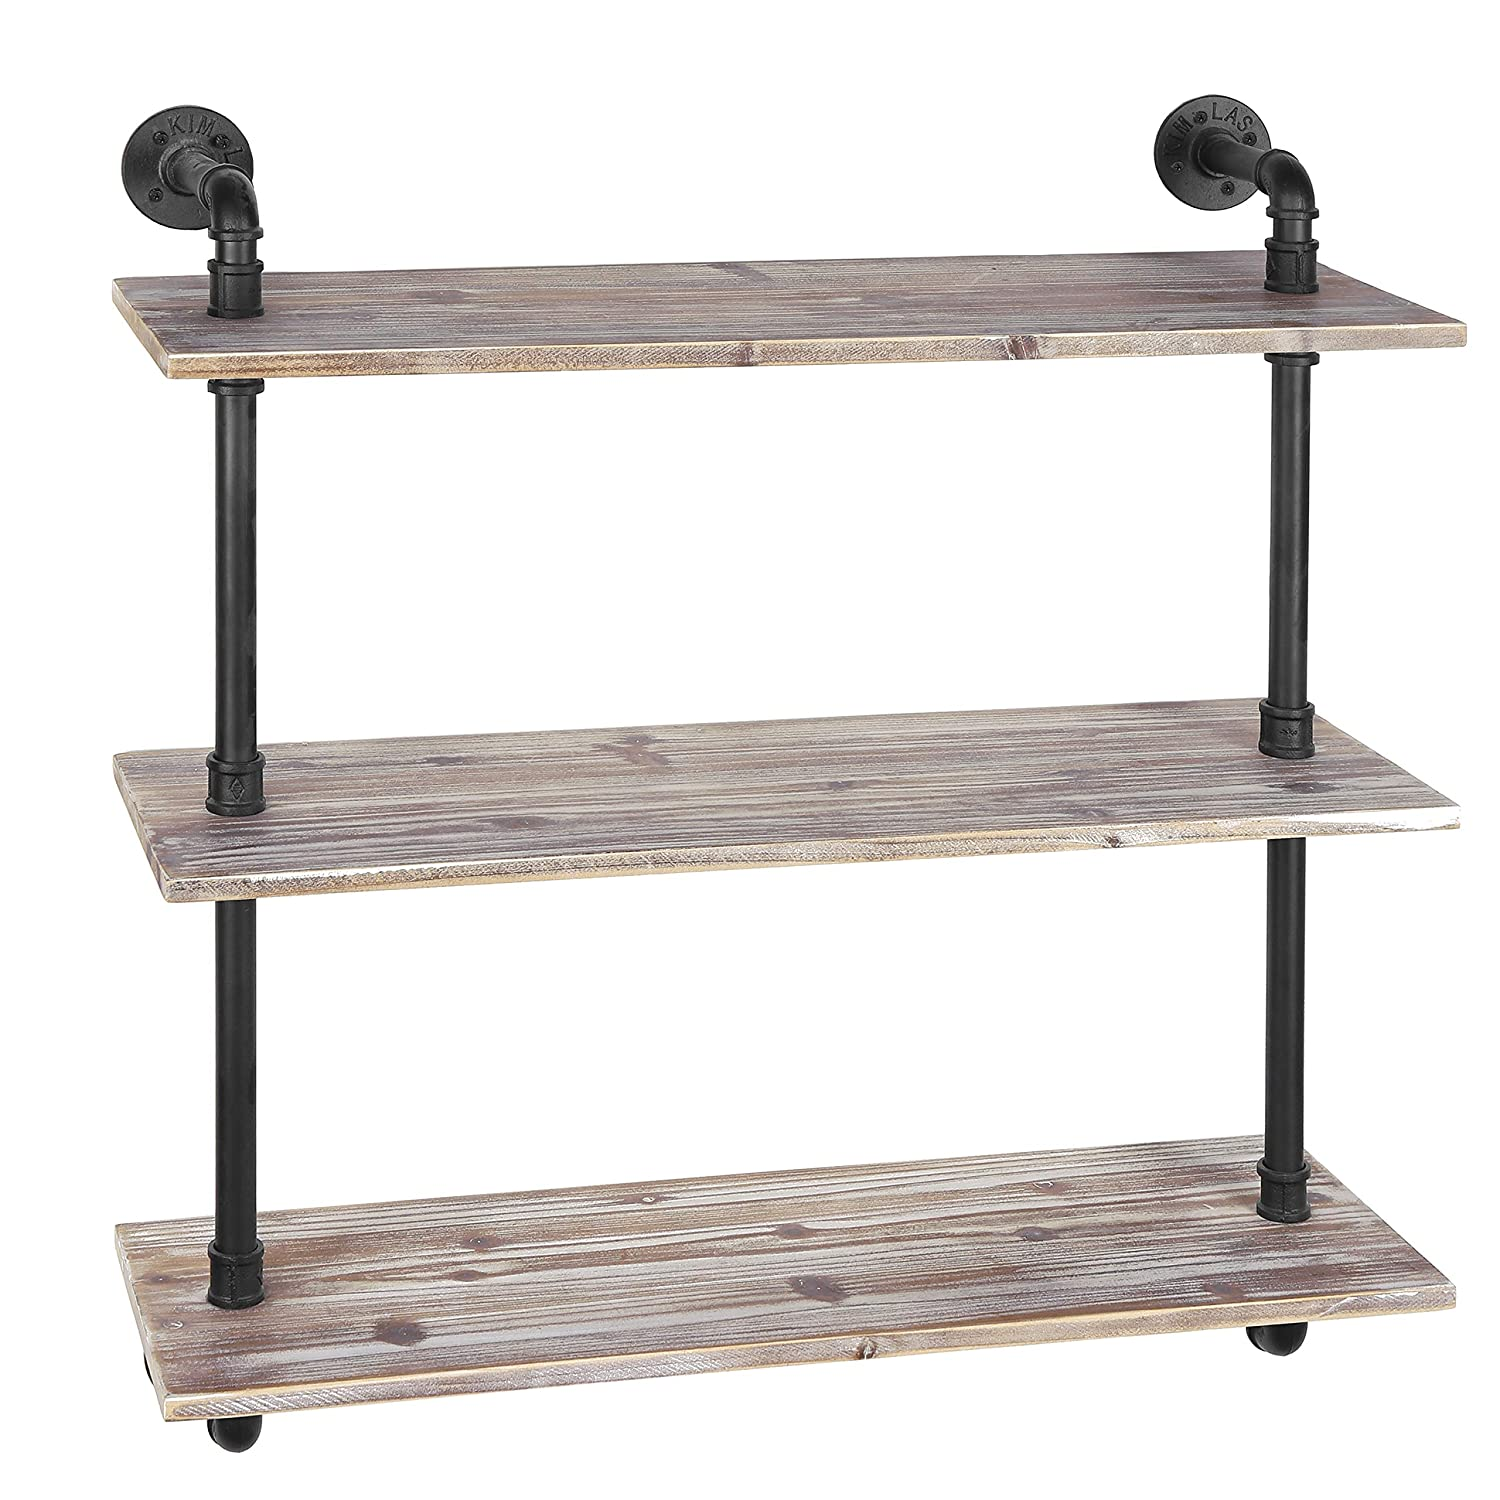 amazon com mygift 3 shelf industrial style pipe rustic wood wall rh amazon com Industrial Pipe Wall Shelves Metal Wall Mounted Shelves